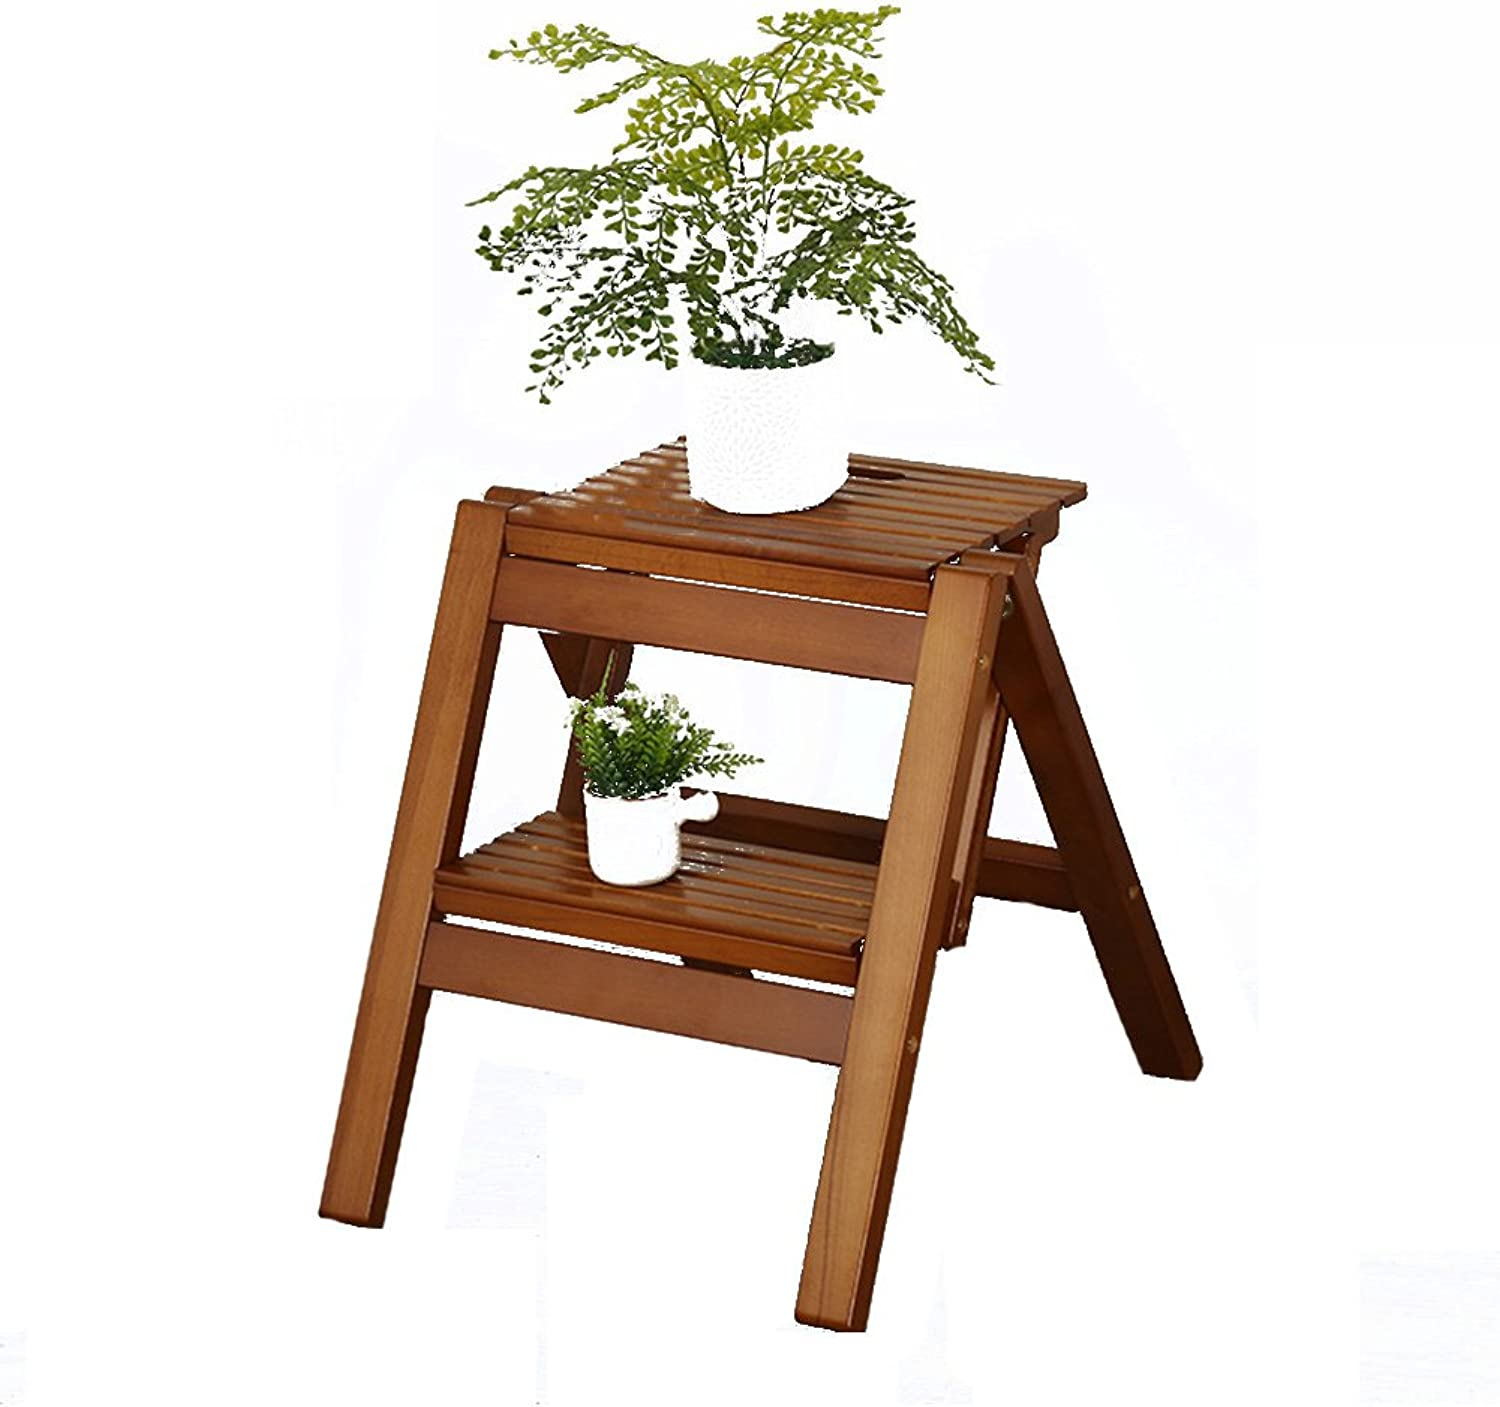 PENGFEI Folding Ladder Stools Stairs Solid Wood Multifunction Portable Home shoes Rack Flower Stand Ascend Footstool Beech, 2 colors Furniture (color   Brown)